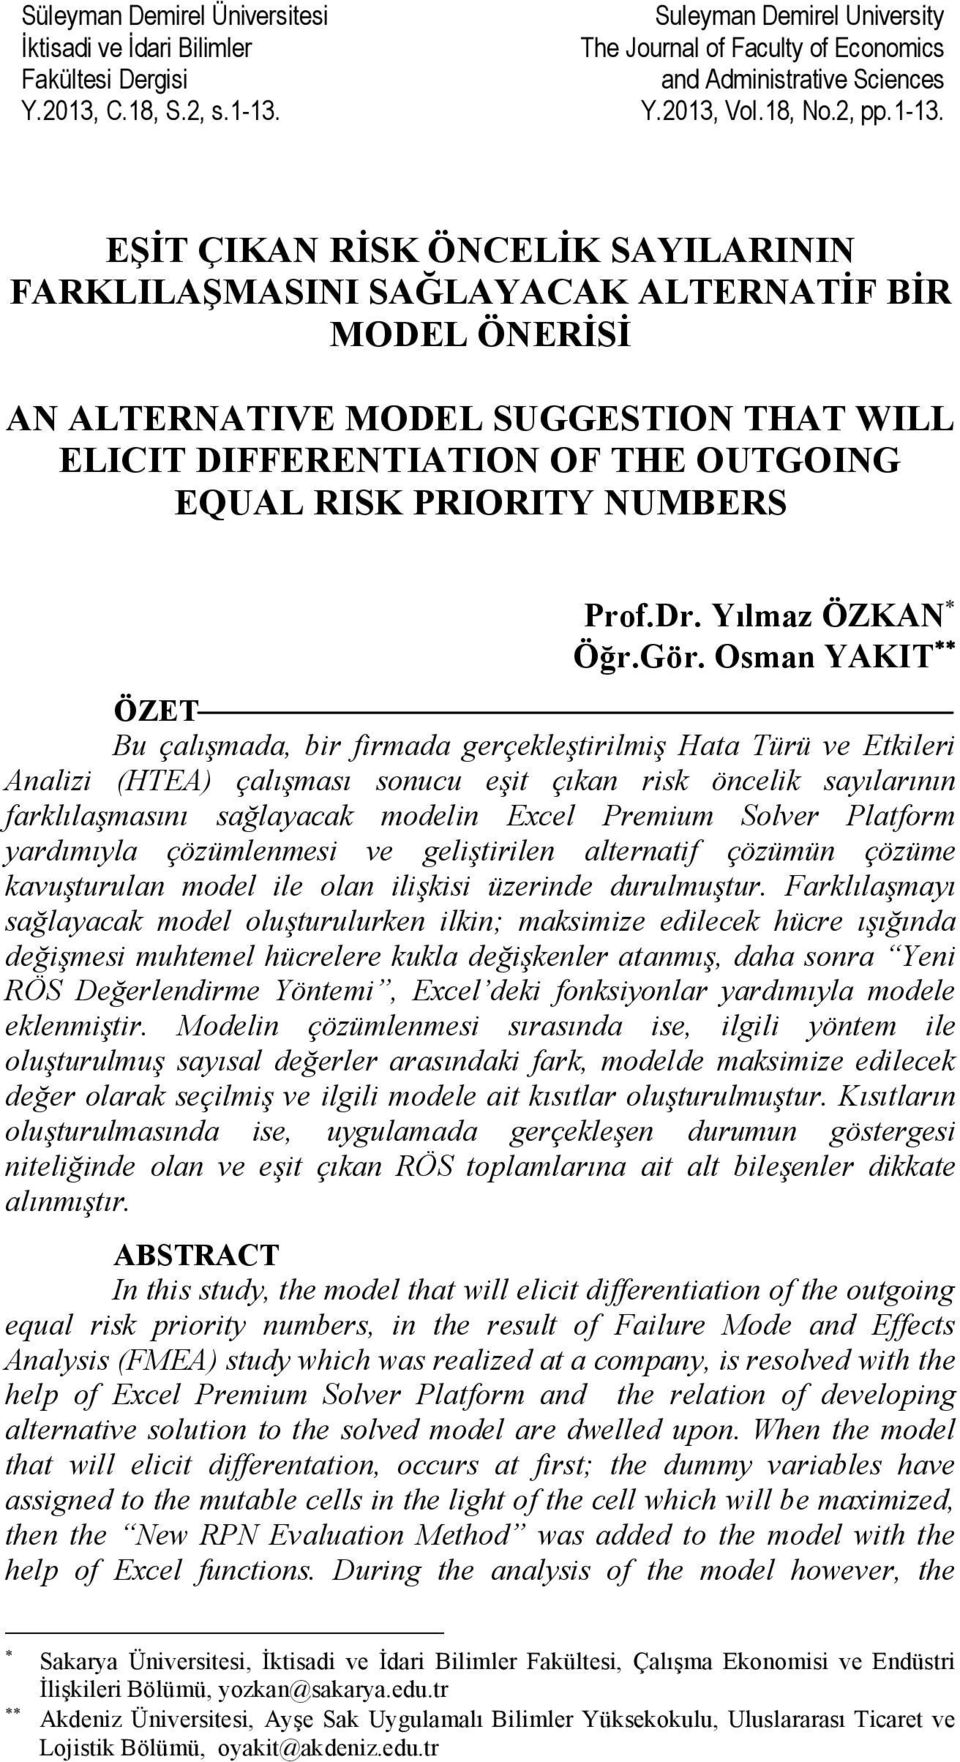 EŞİT ÇIKAN RİSK ÖNCELİK SAYILARININ FARKLILAŞMASINI SAĞLAYACAK ALTERNATİF BİR MODEL ÖNERİSİ AN ALTERNATIVE MODEL SUGGESTION THAT WILL ELICIT DIFFERENTIATION OF THE OUTGOING EQUAL RISK PRIORITY